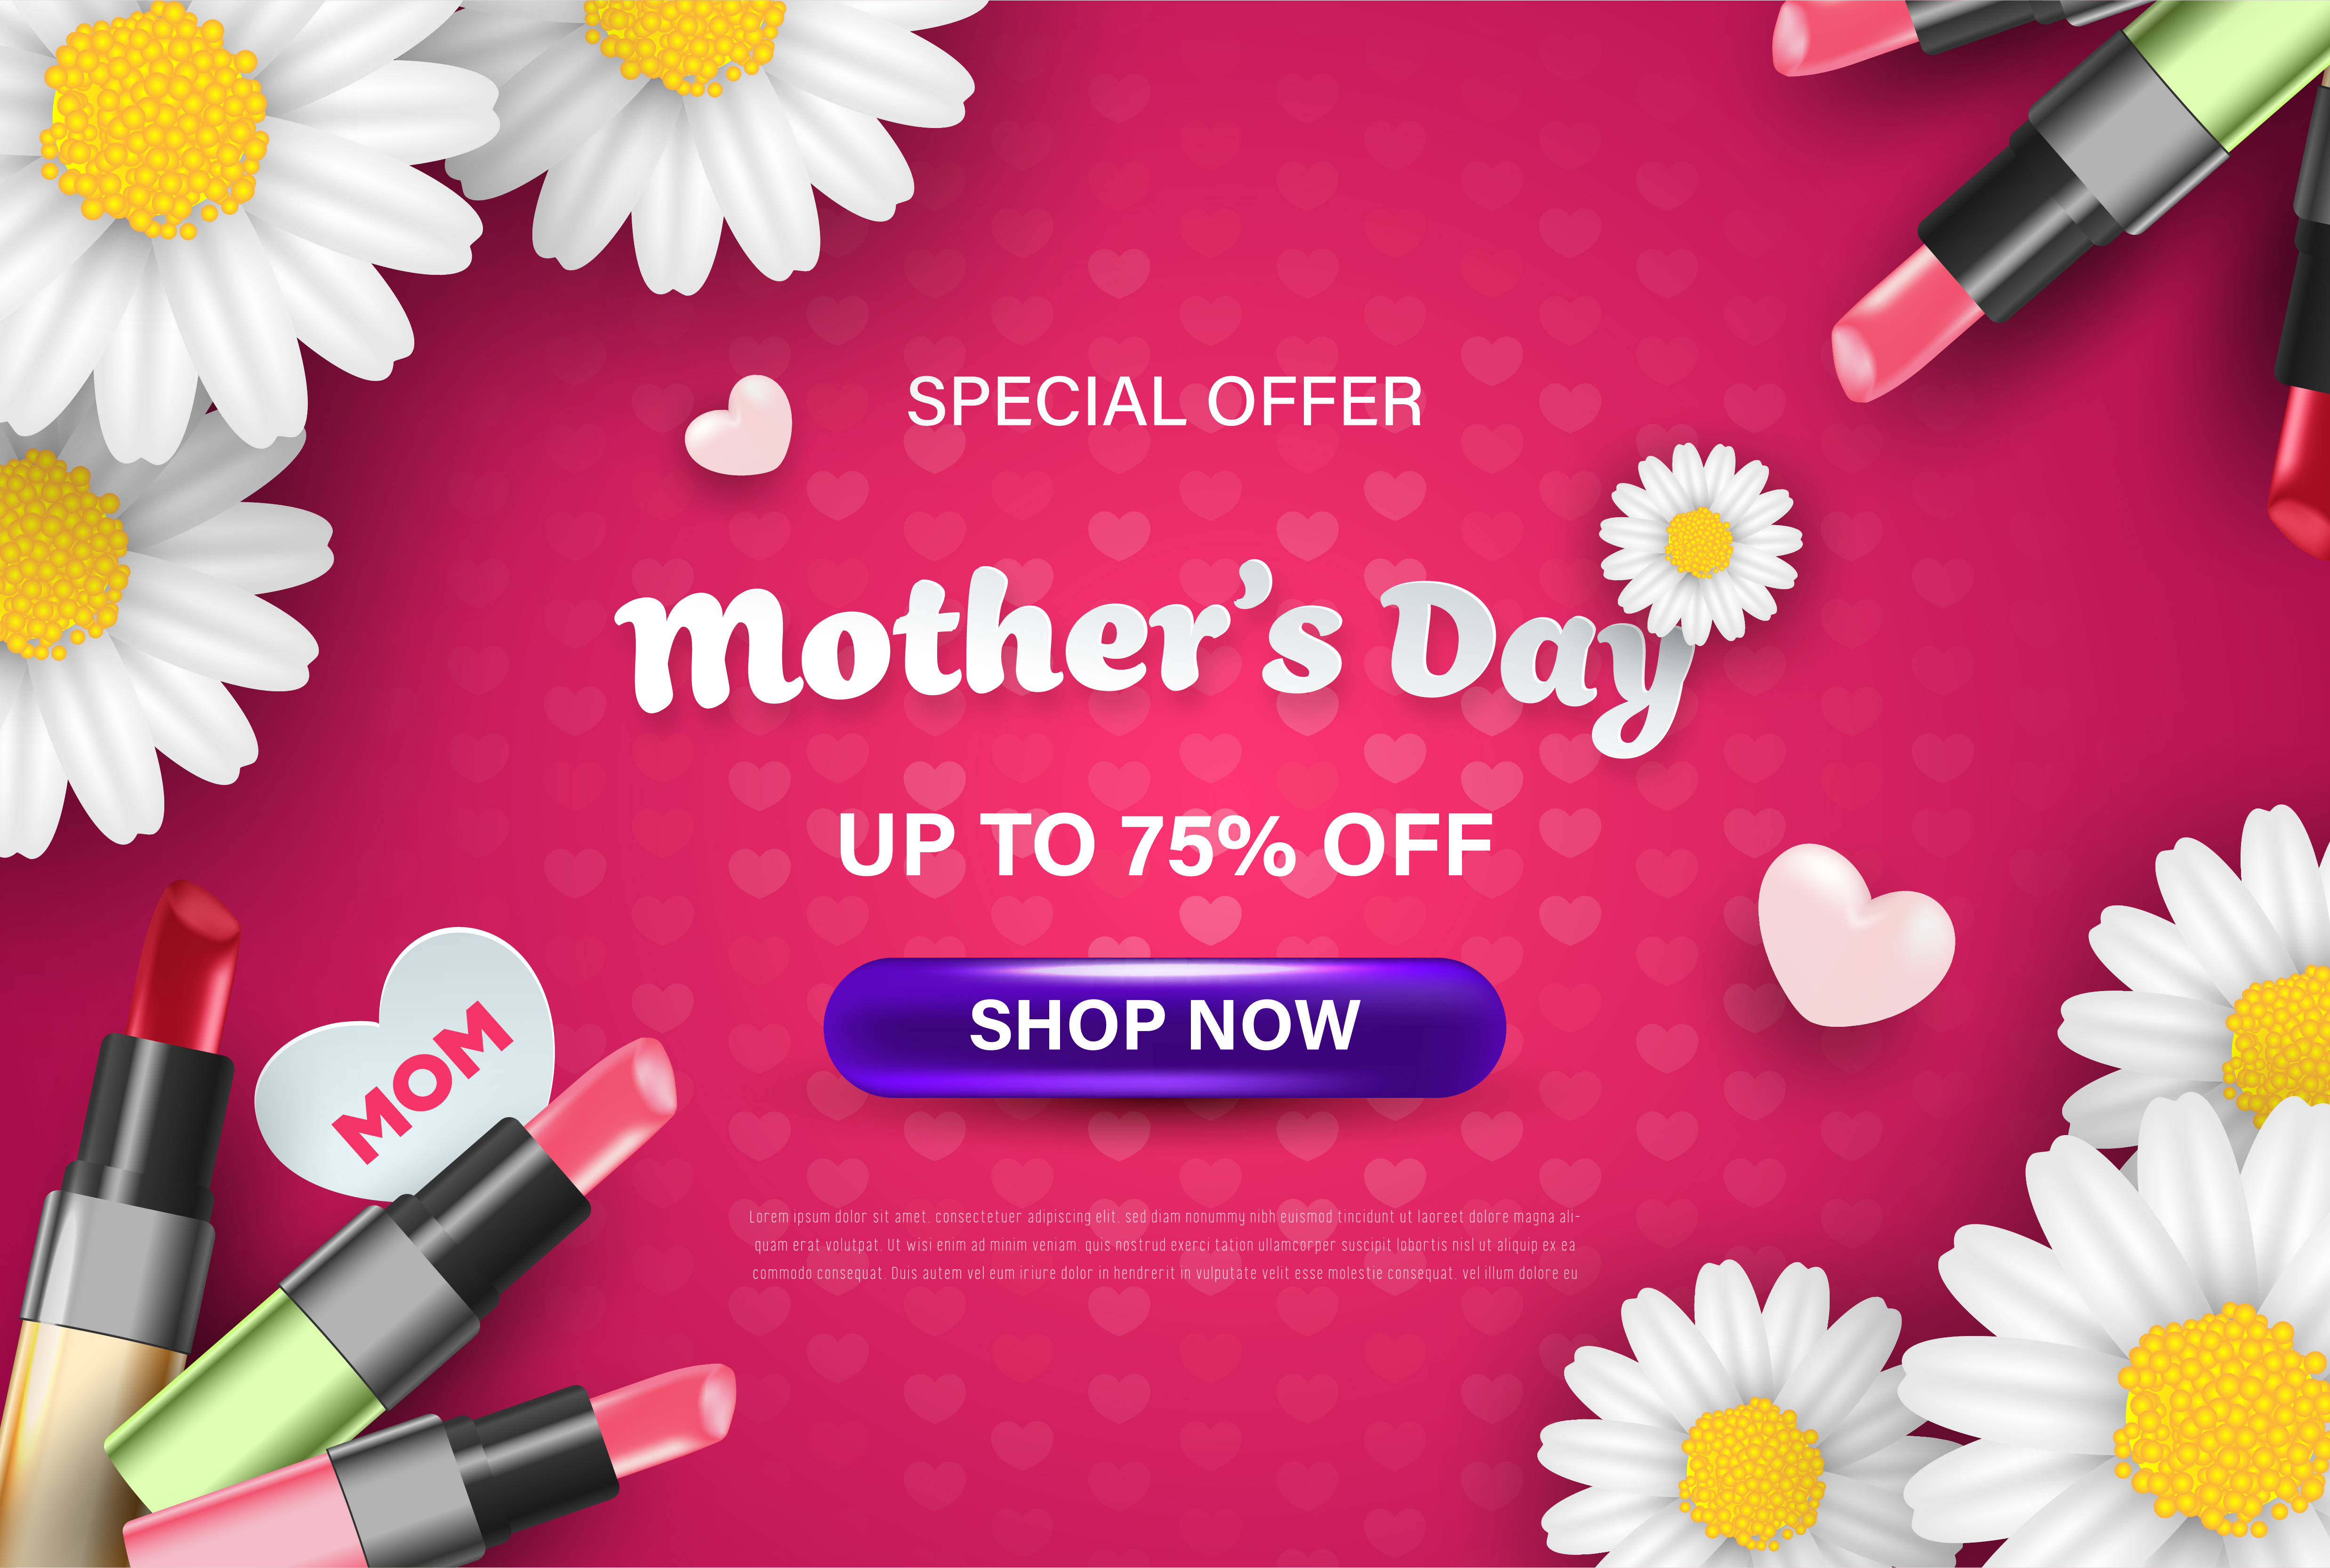 Happy Mothers Day Sale Celebration Wallpaper   Download 4950x3332